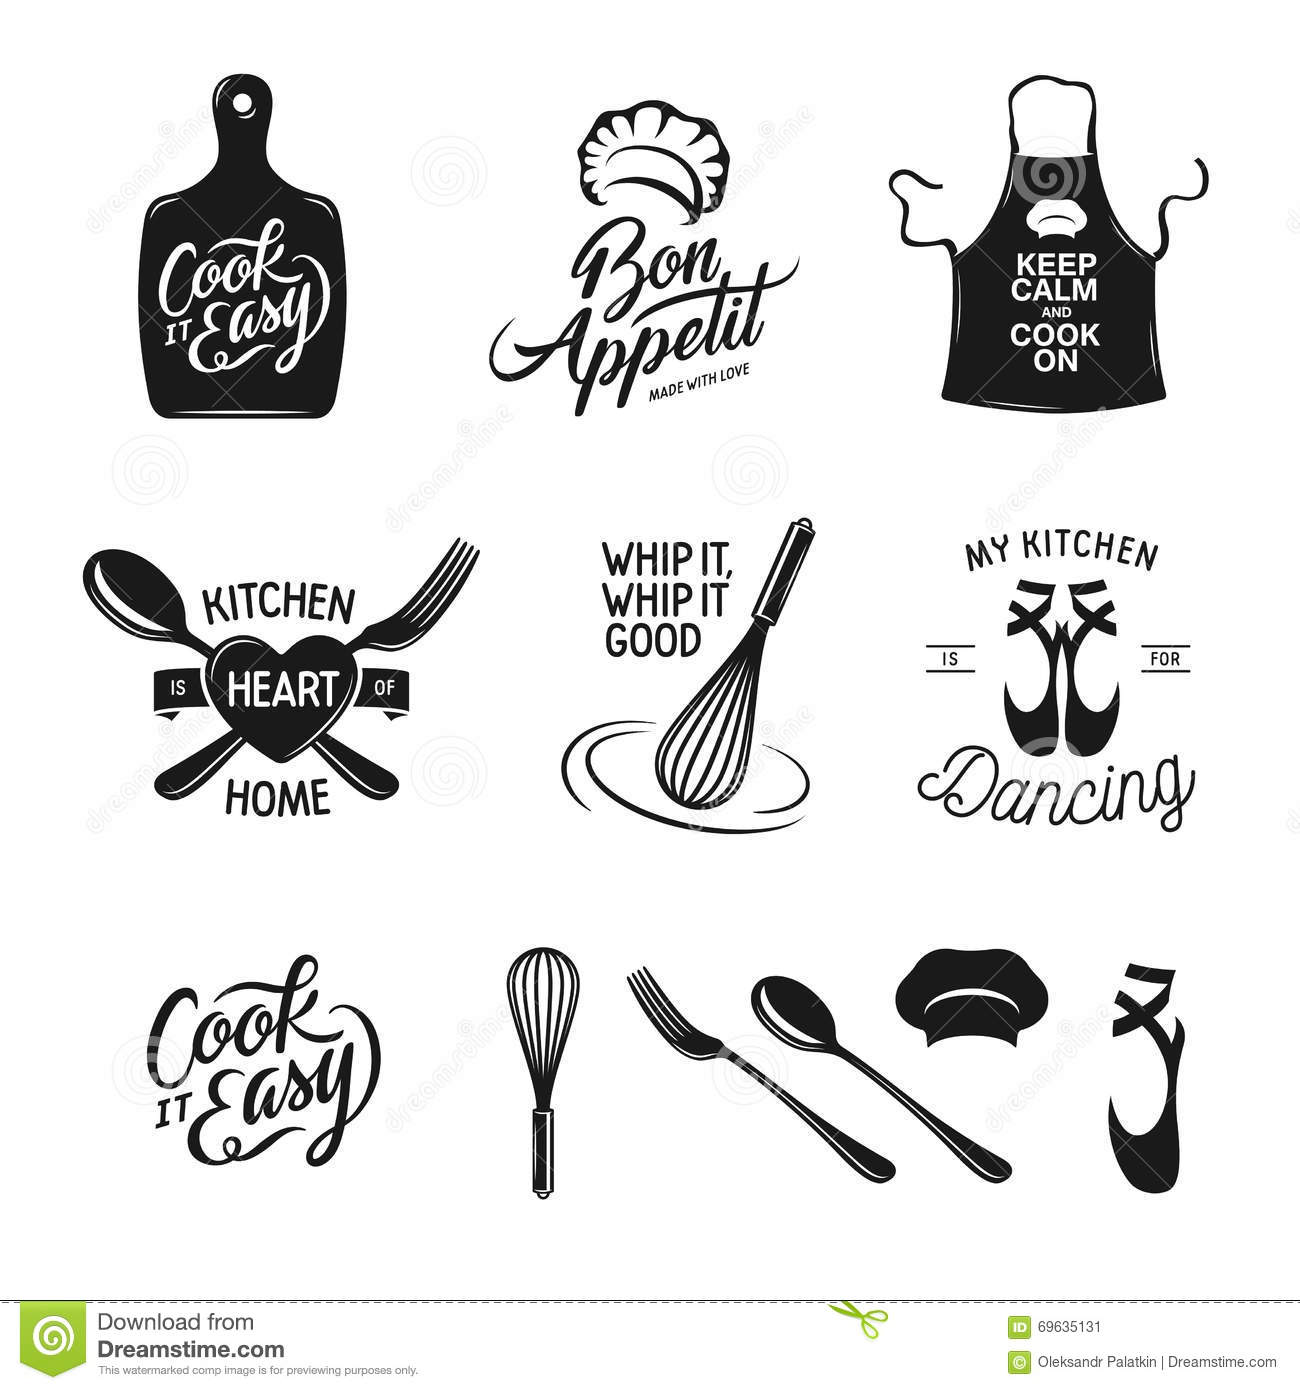 Vector Illustration Kitchen Tools Cooking moreover 441238 Royalty Free Bbq Clipart Illustration besides Apron Clipart together with 20 Free Printable Hello Kitty Coloring besides Border Clipart Image 7600. on bbq chef cartoon